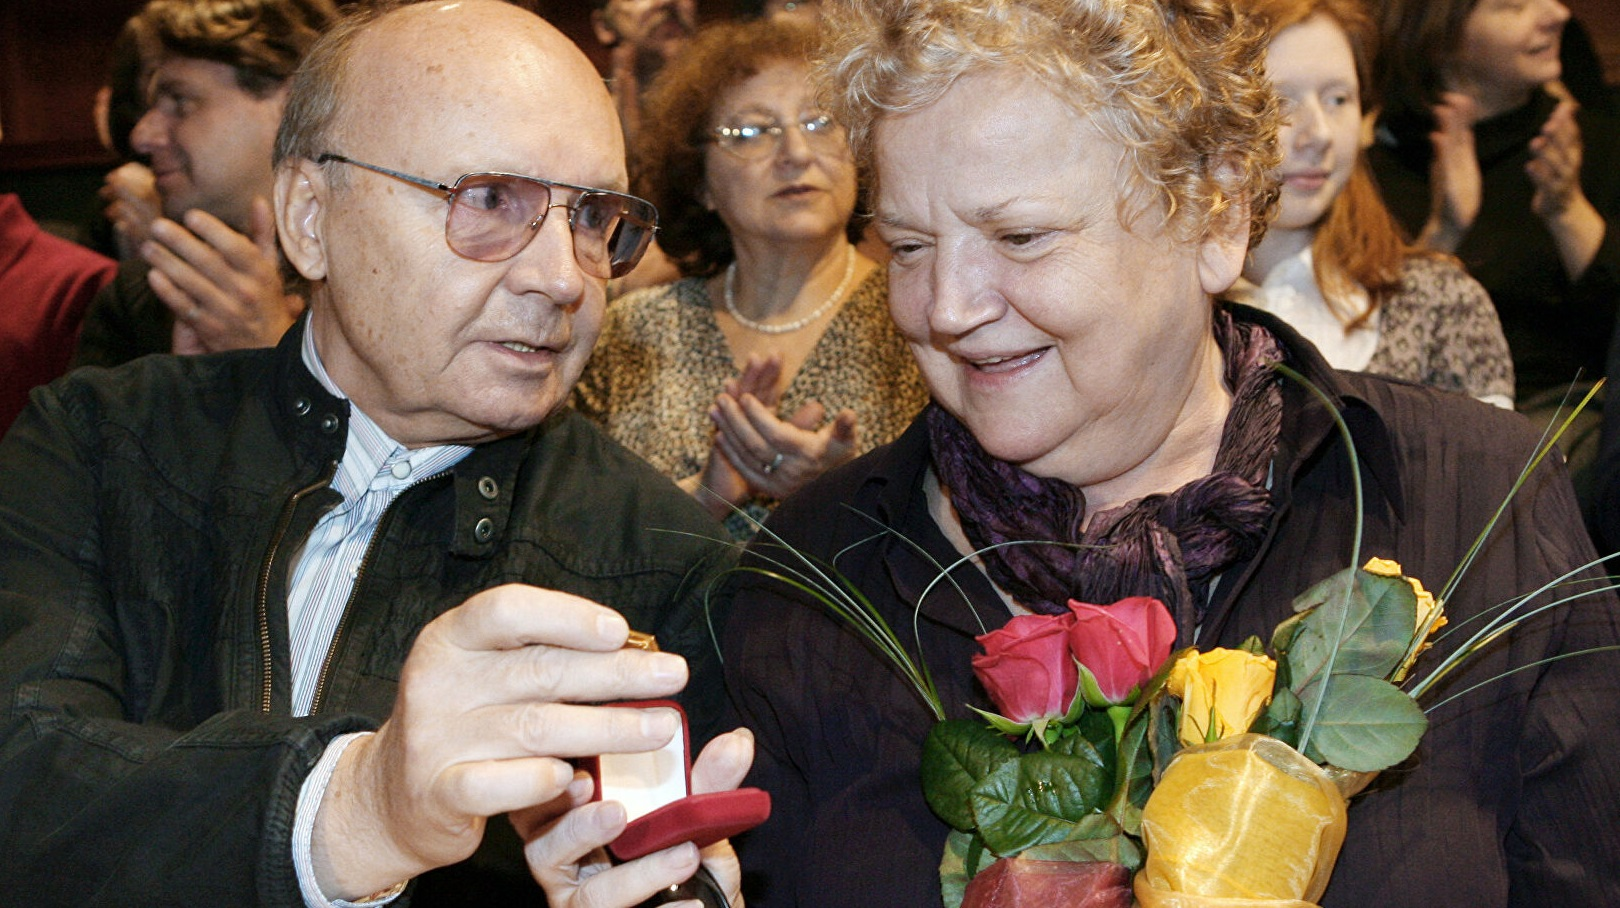 Andrey Myagkov's widow did not come to her husband's funeral